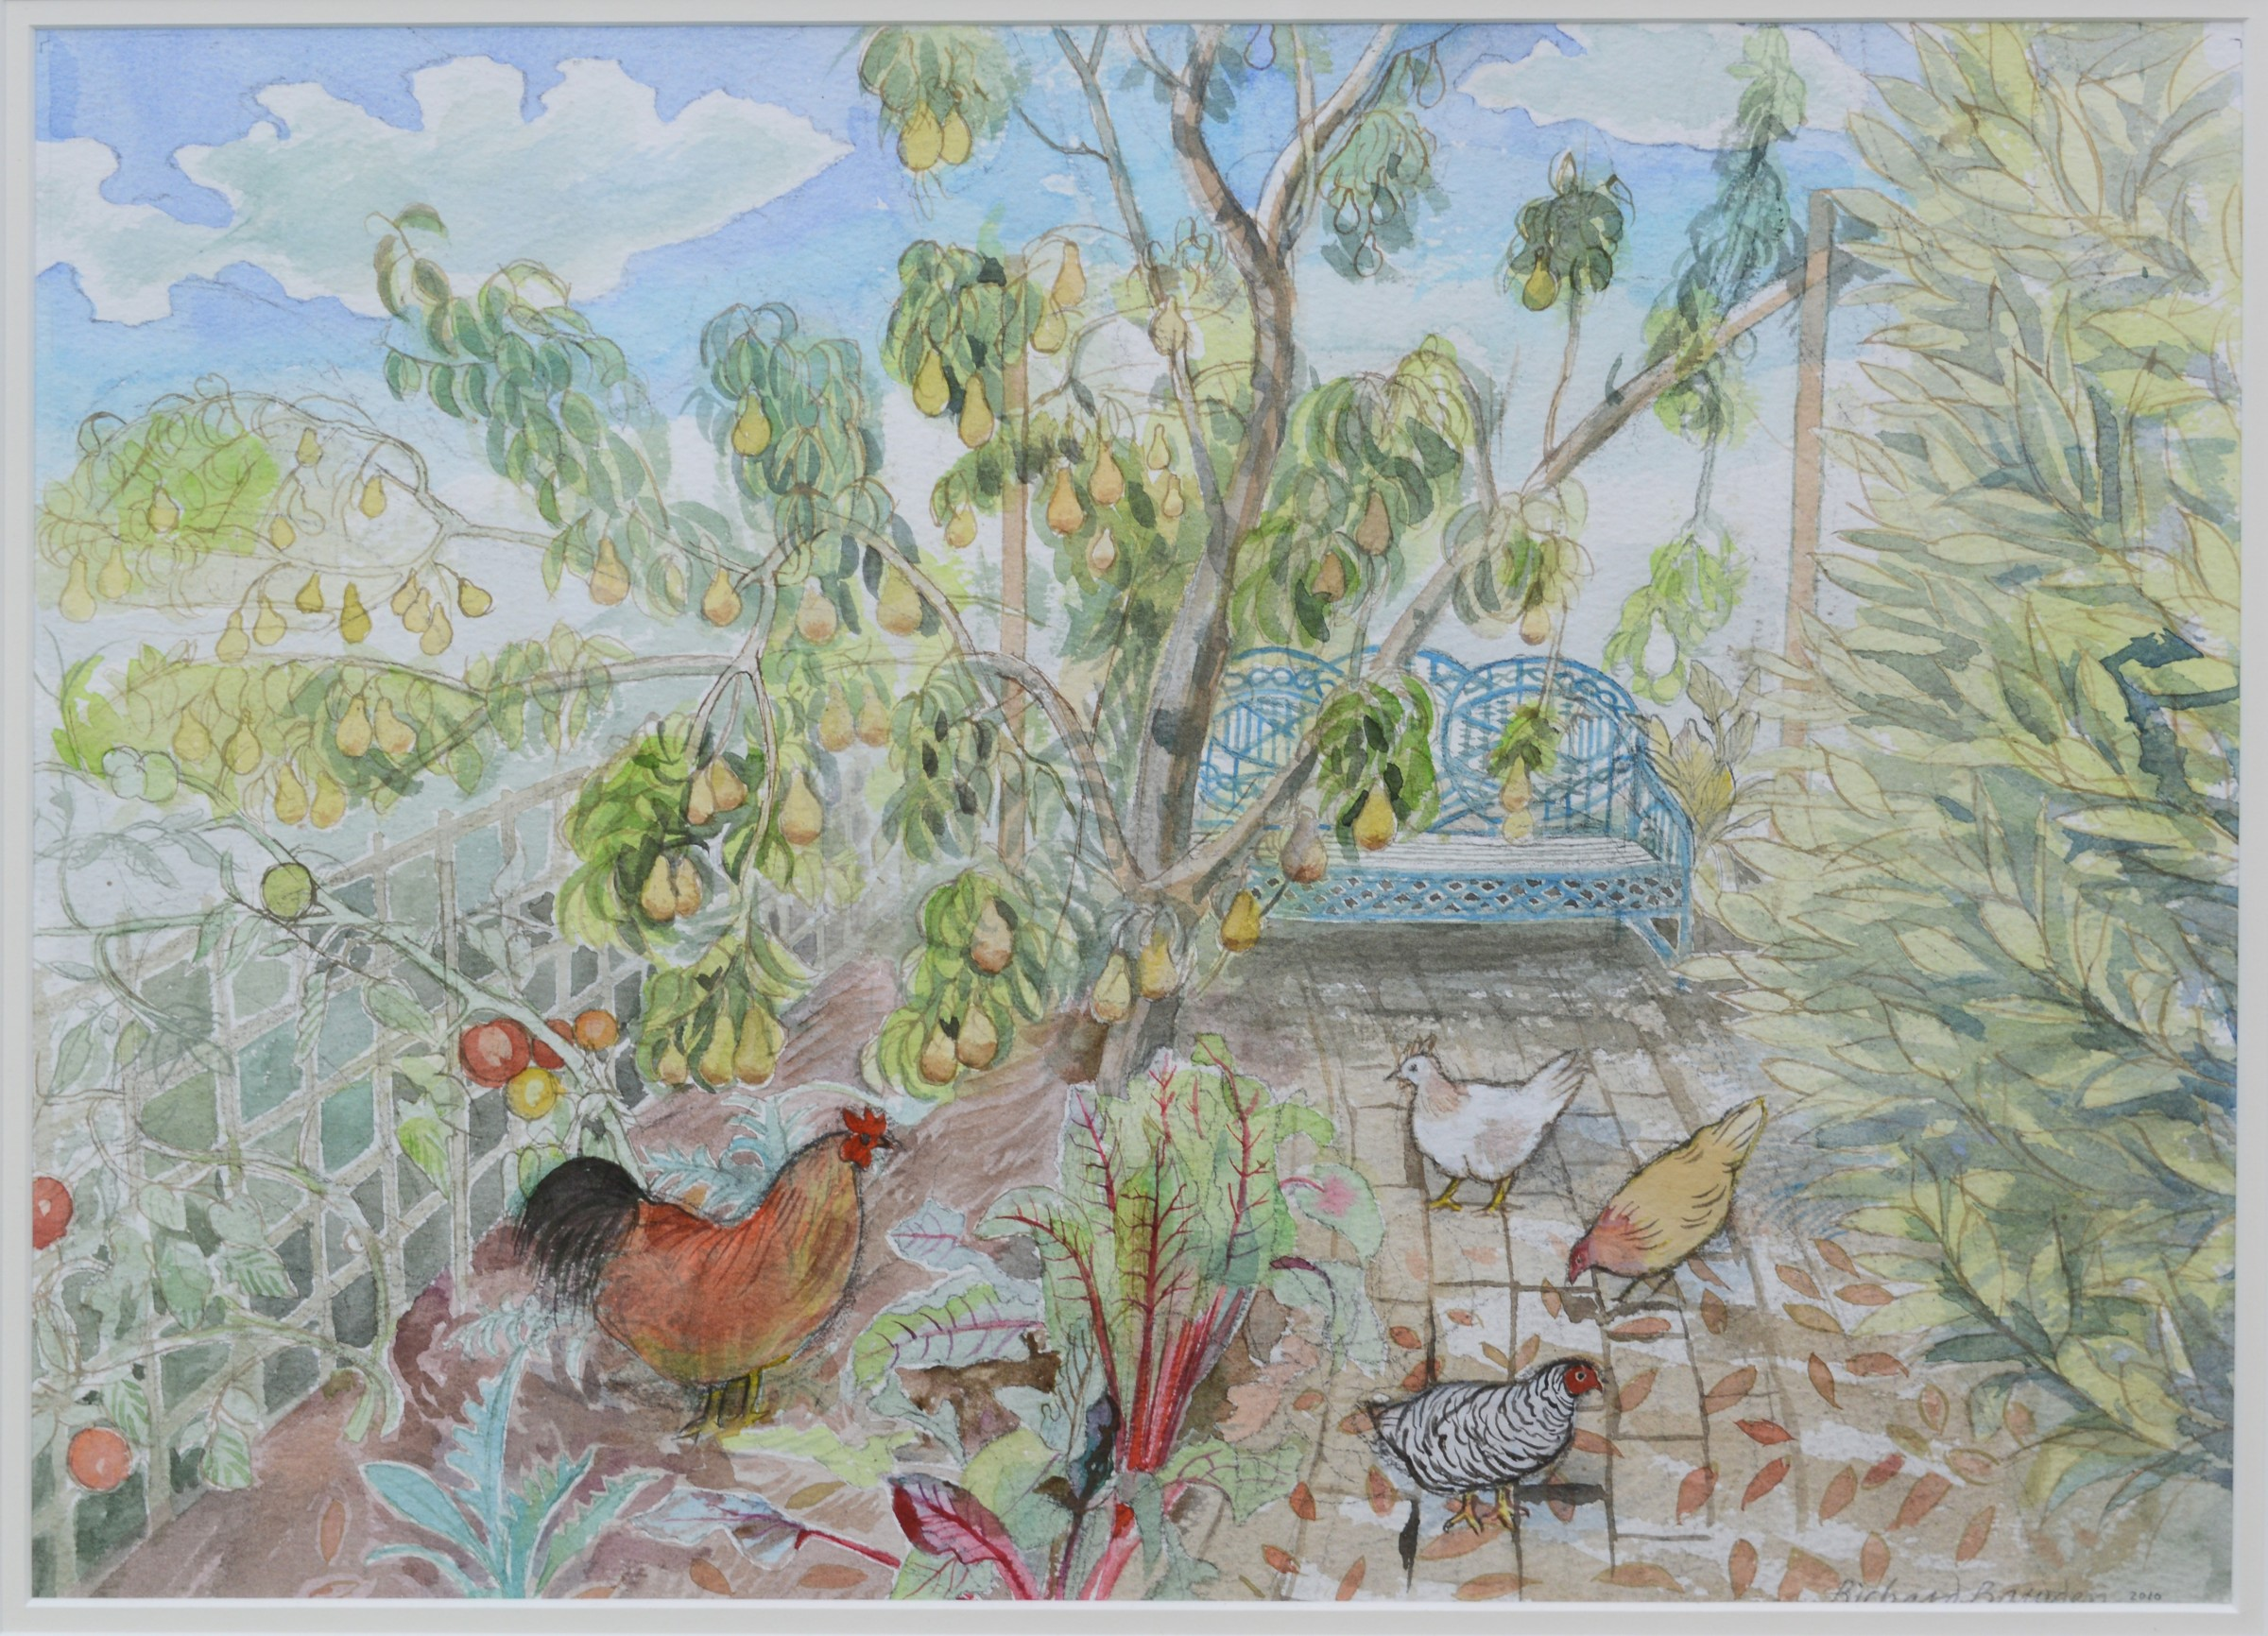 <span class=&#34;link fancybox-details-link&#34;><a href=&#34;/artists/38-richard-bawden/works/9465-richard-bawden-cock-and-three-hens/&#34;>View Detail Page</a></span><div class=&#34;artist&#34;><span class=&#34;artist&#34;><strong>Richard Bawden</strong></span></div>